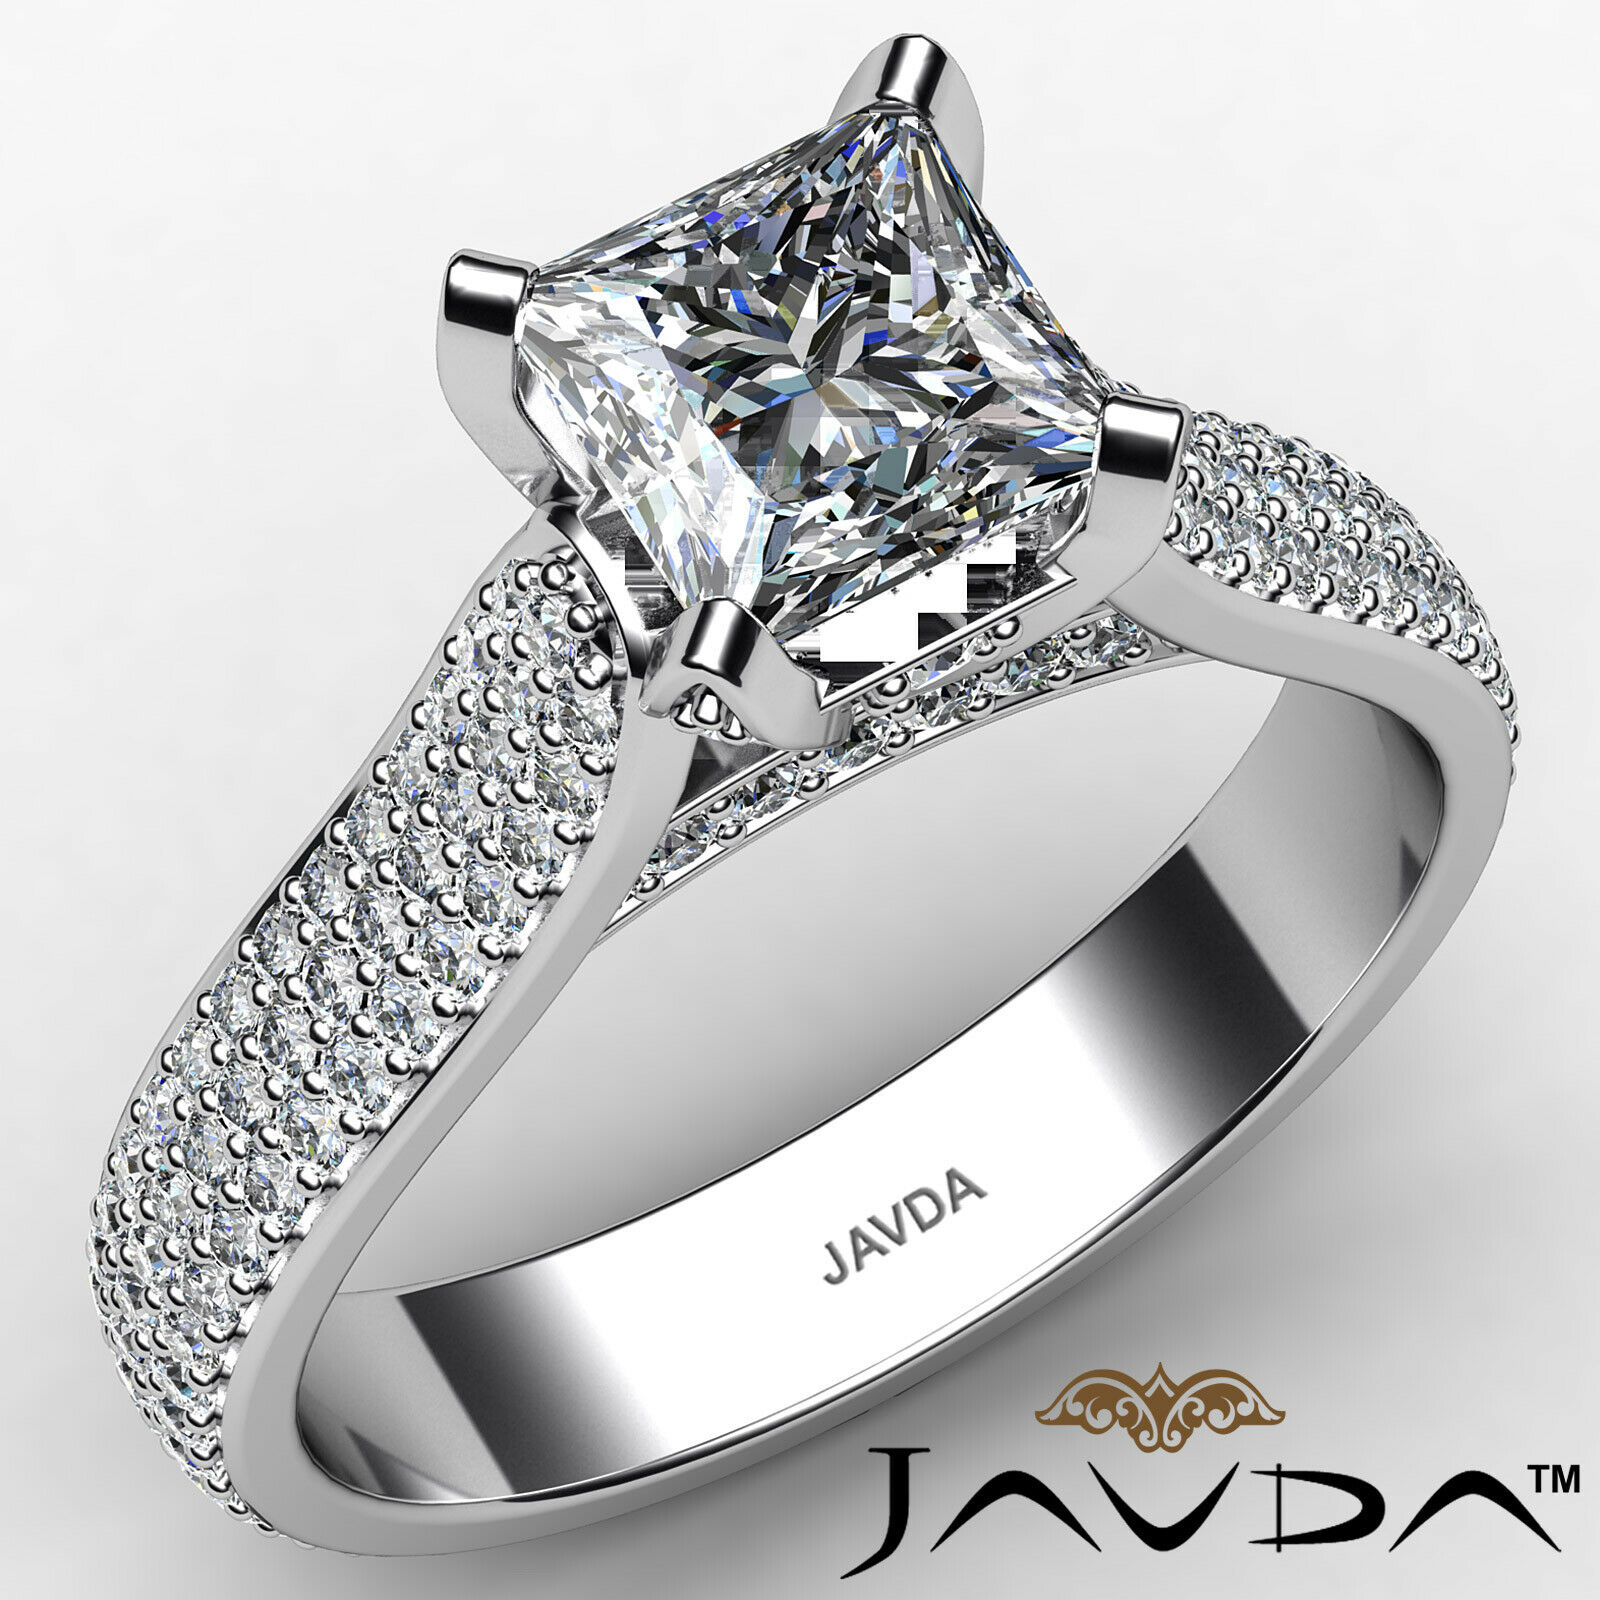 Princess Diamond Engagement Micro Pave Ring GIA E Color & SI1 clarity 1.95 ctw